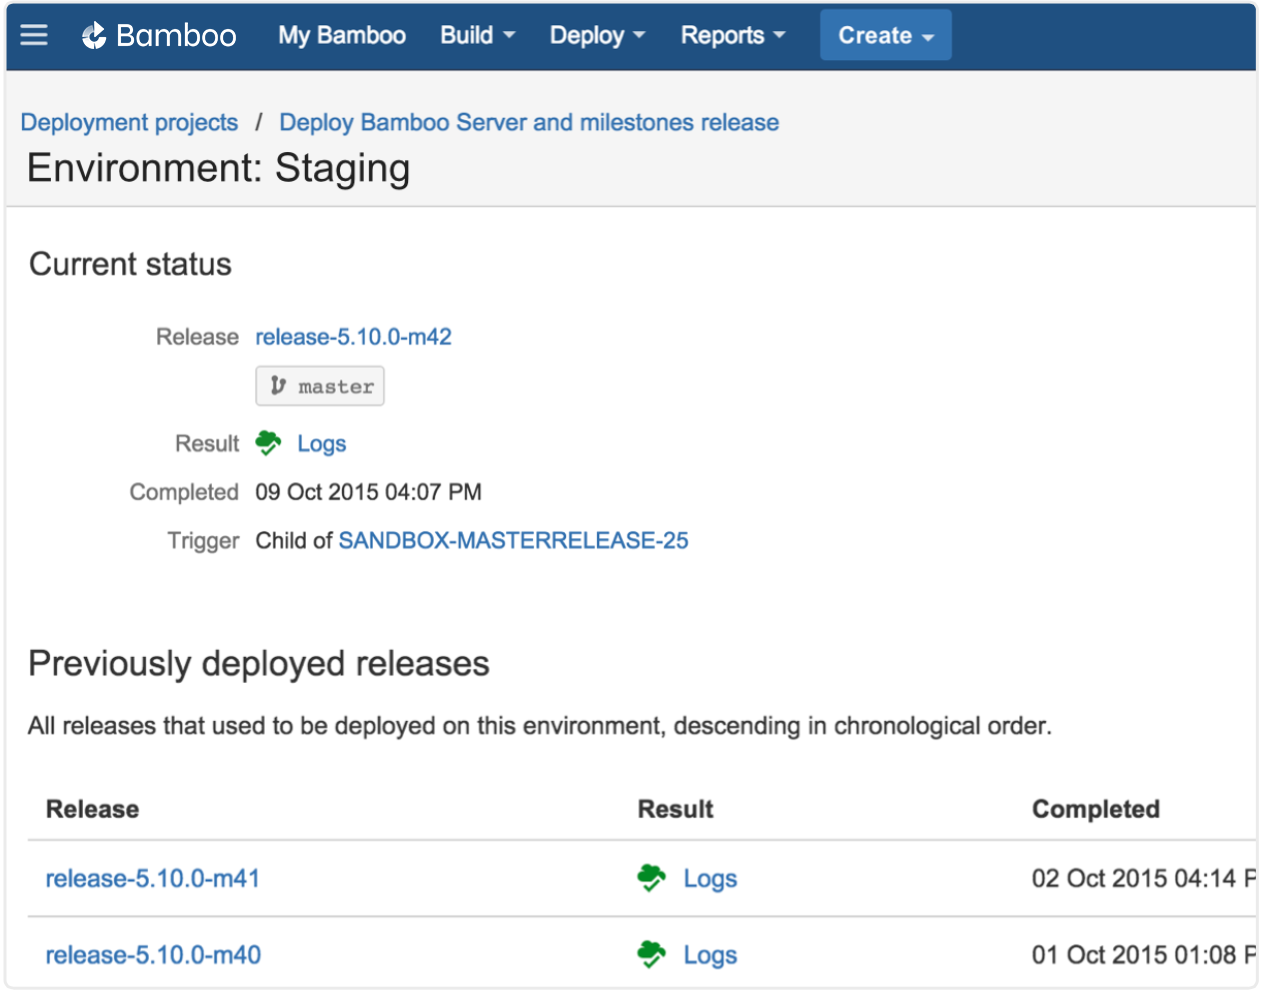 Bamboo environment staging releases screenshot